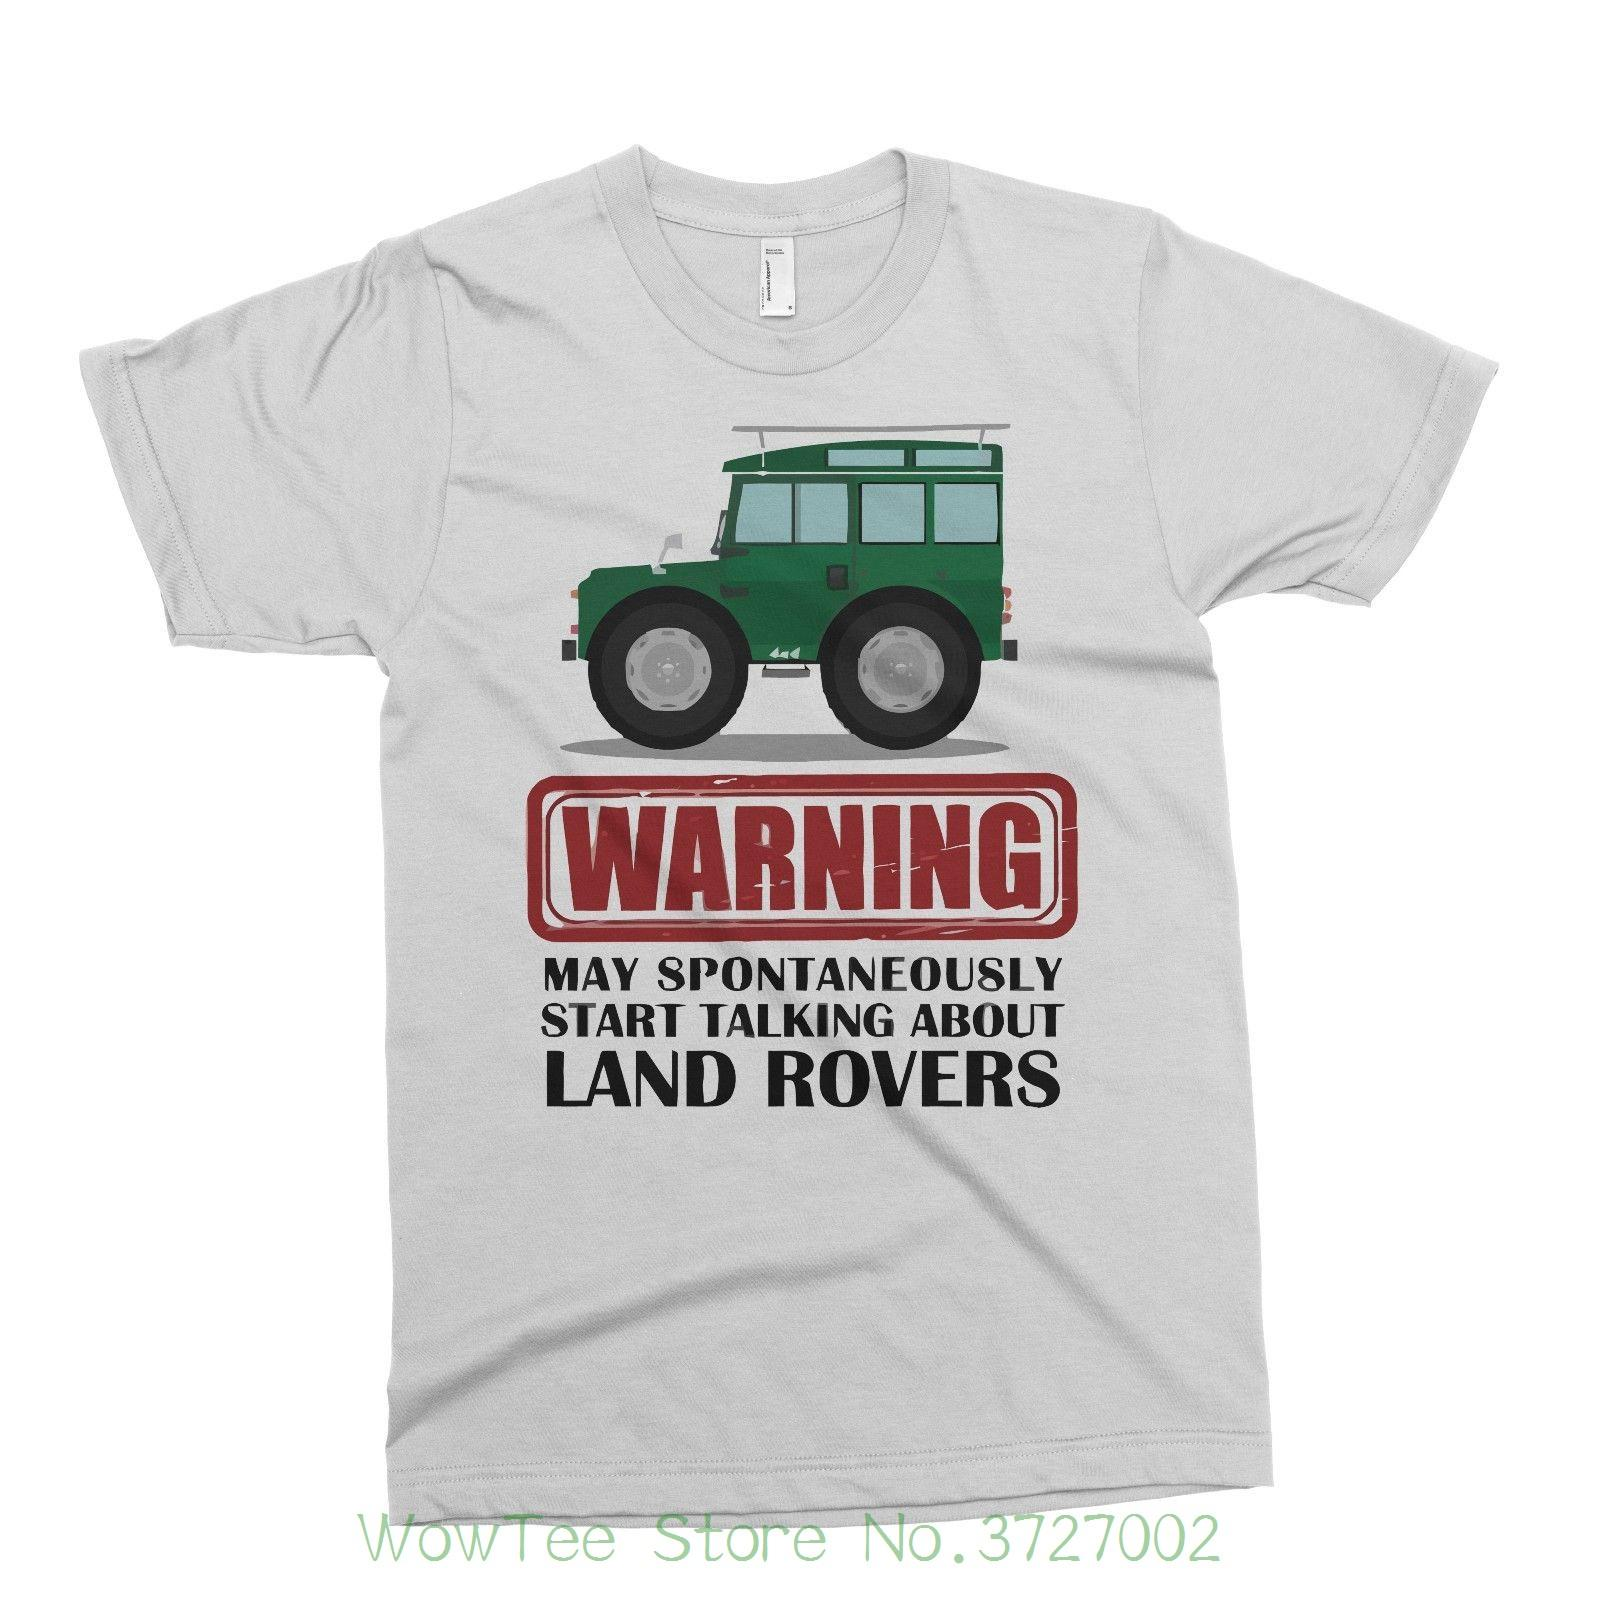 79c209186ee Warning T-shirt - May Talk About Tractors Funny Gift Novelty Top New T  Shirts Unisex Funny Tops Tee Online with  18.15 Piece on Wowteestore s Store  ...